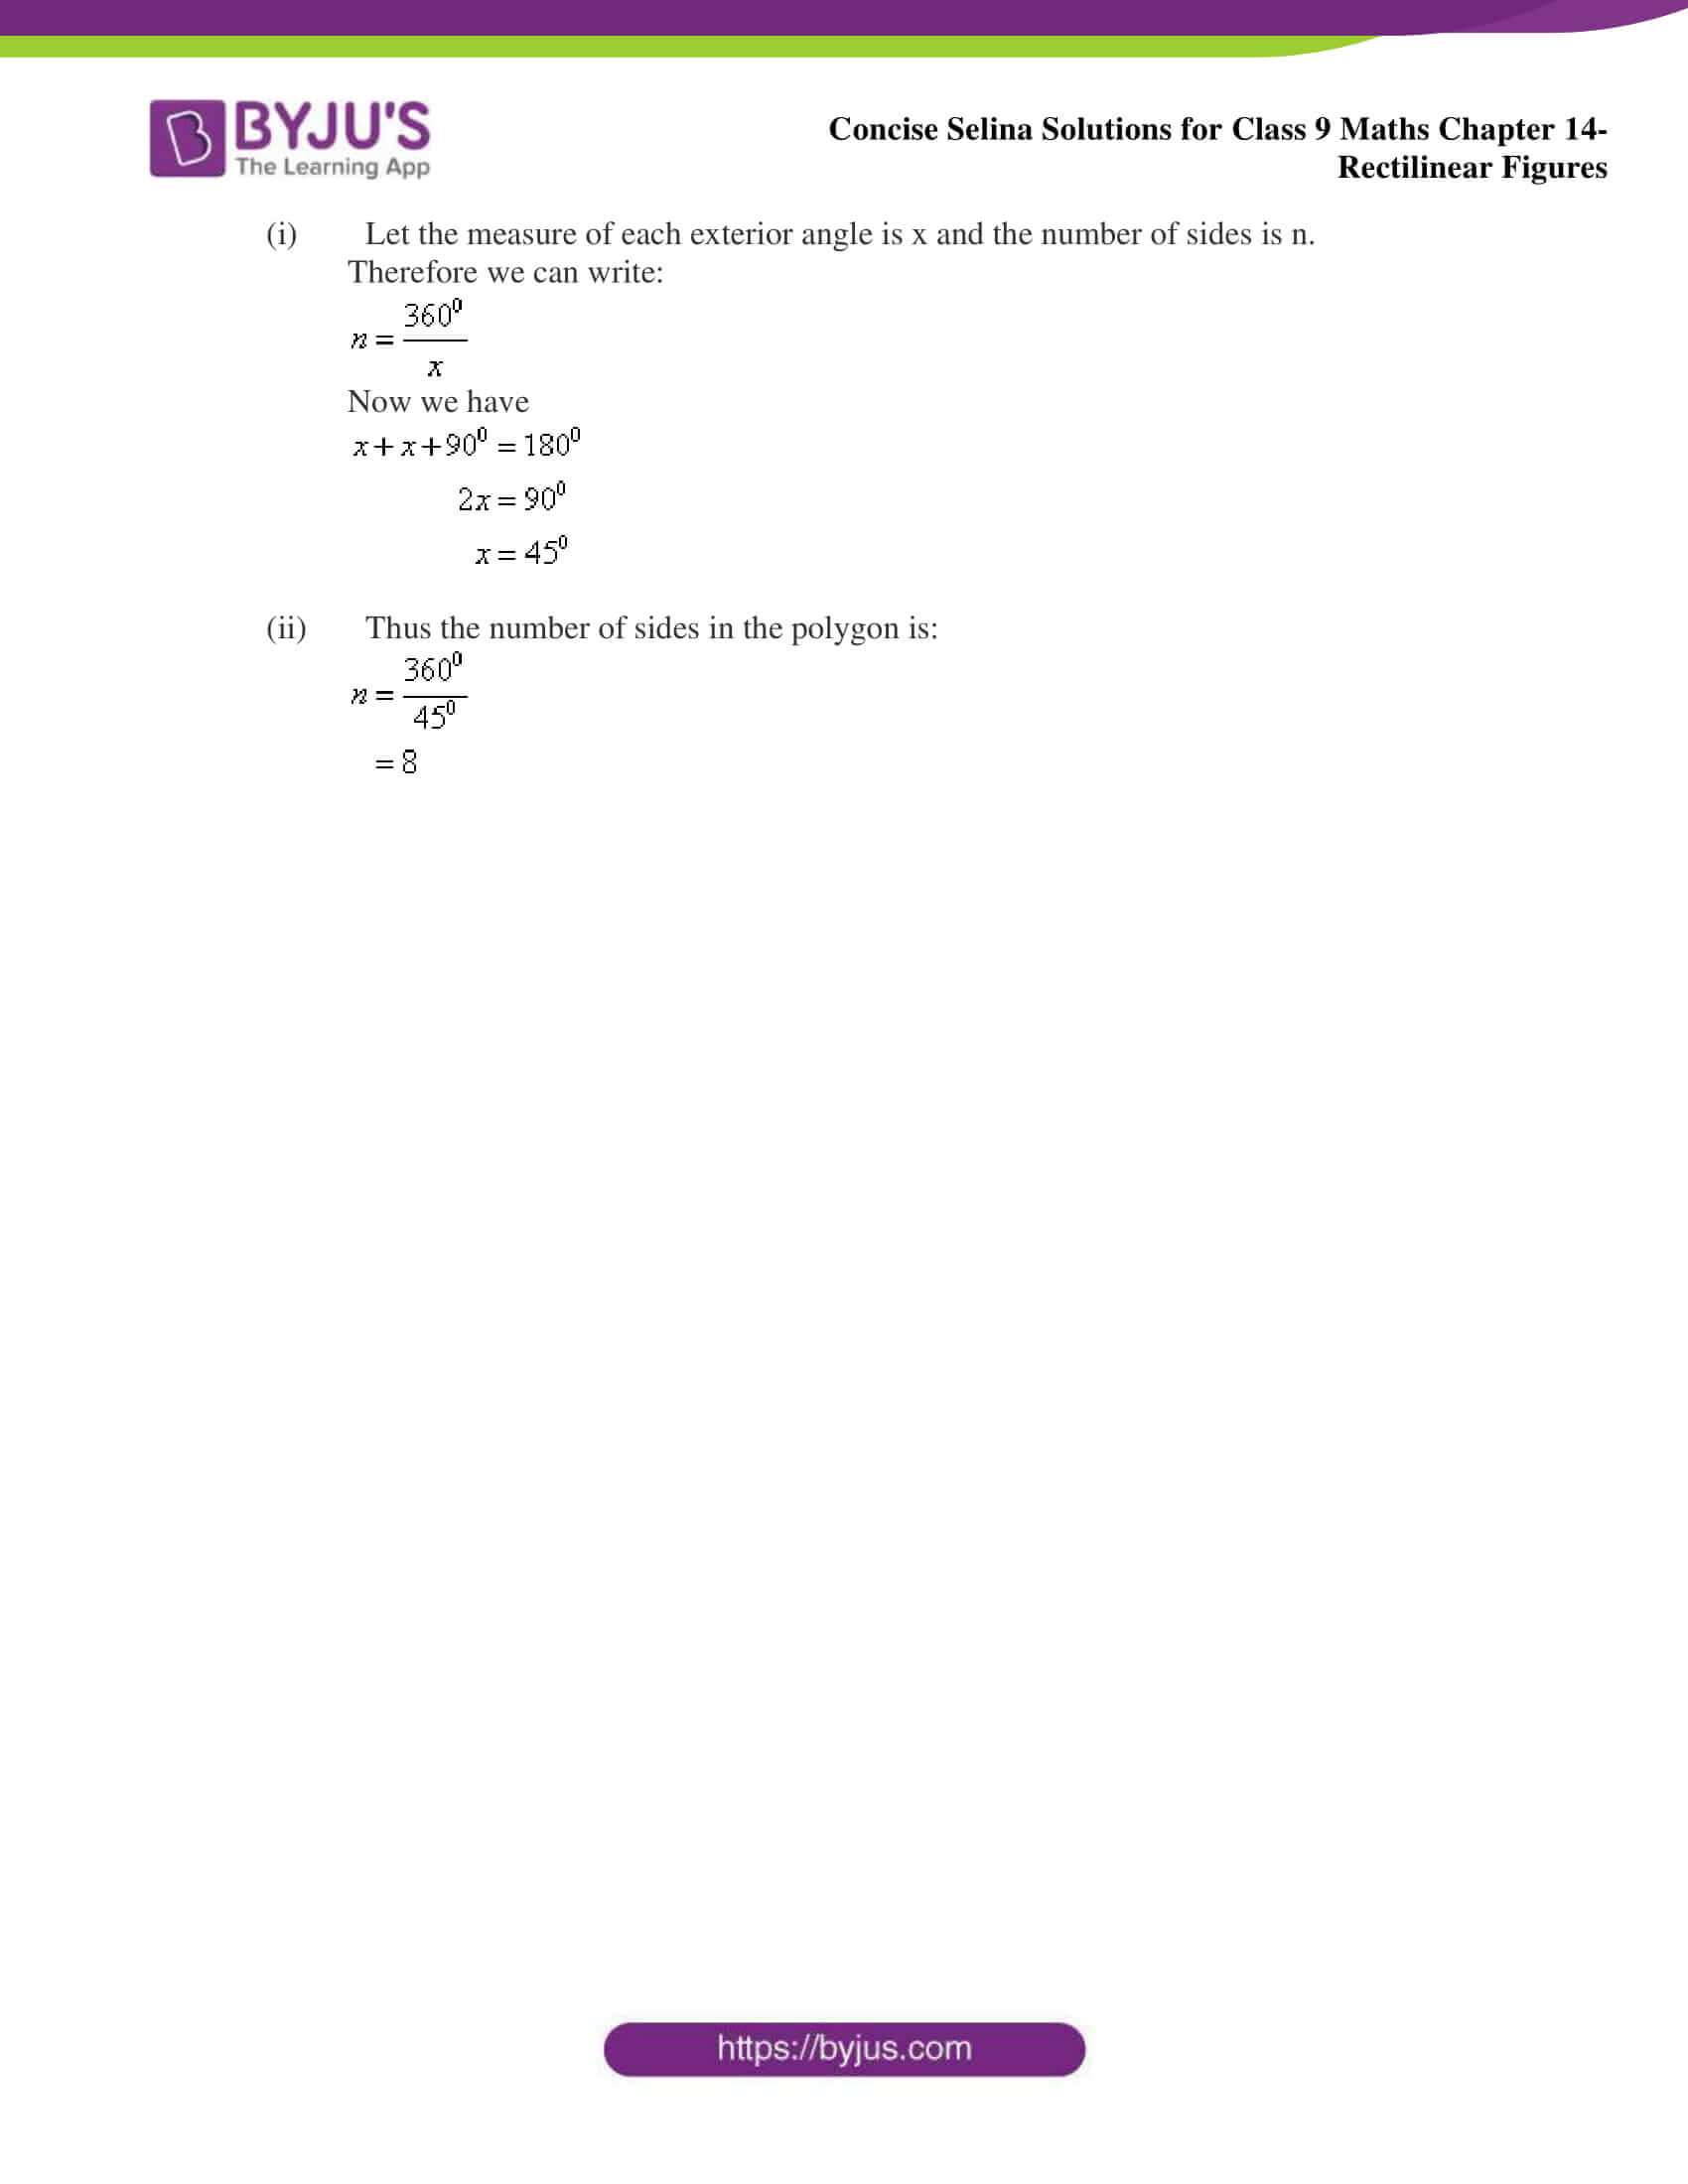 selina Solutions for Class 9 Maths Chapter 14 part 05